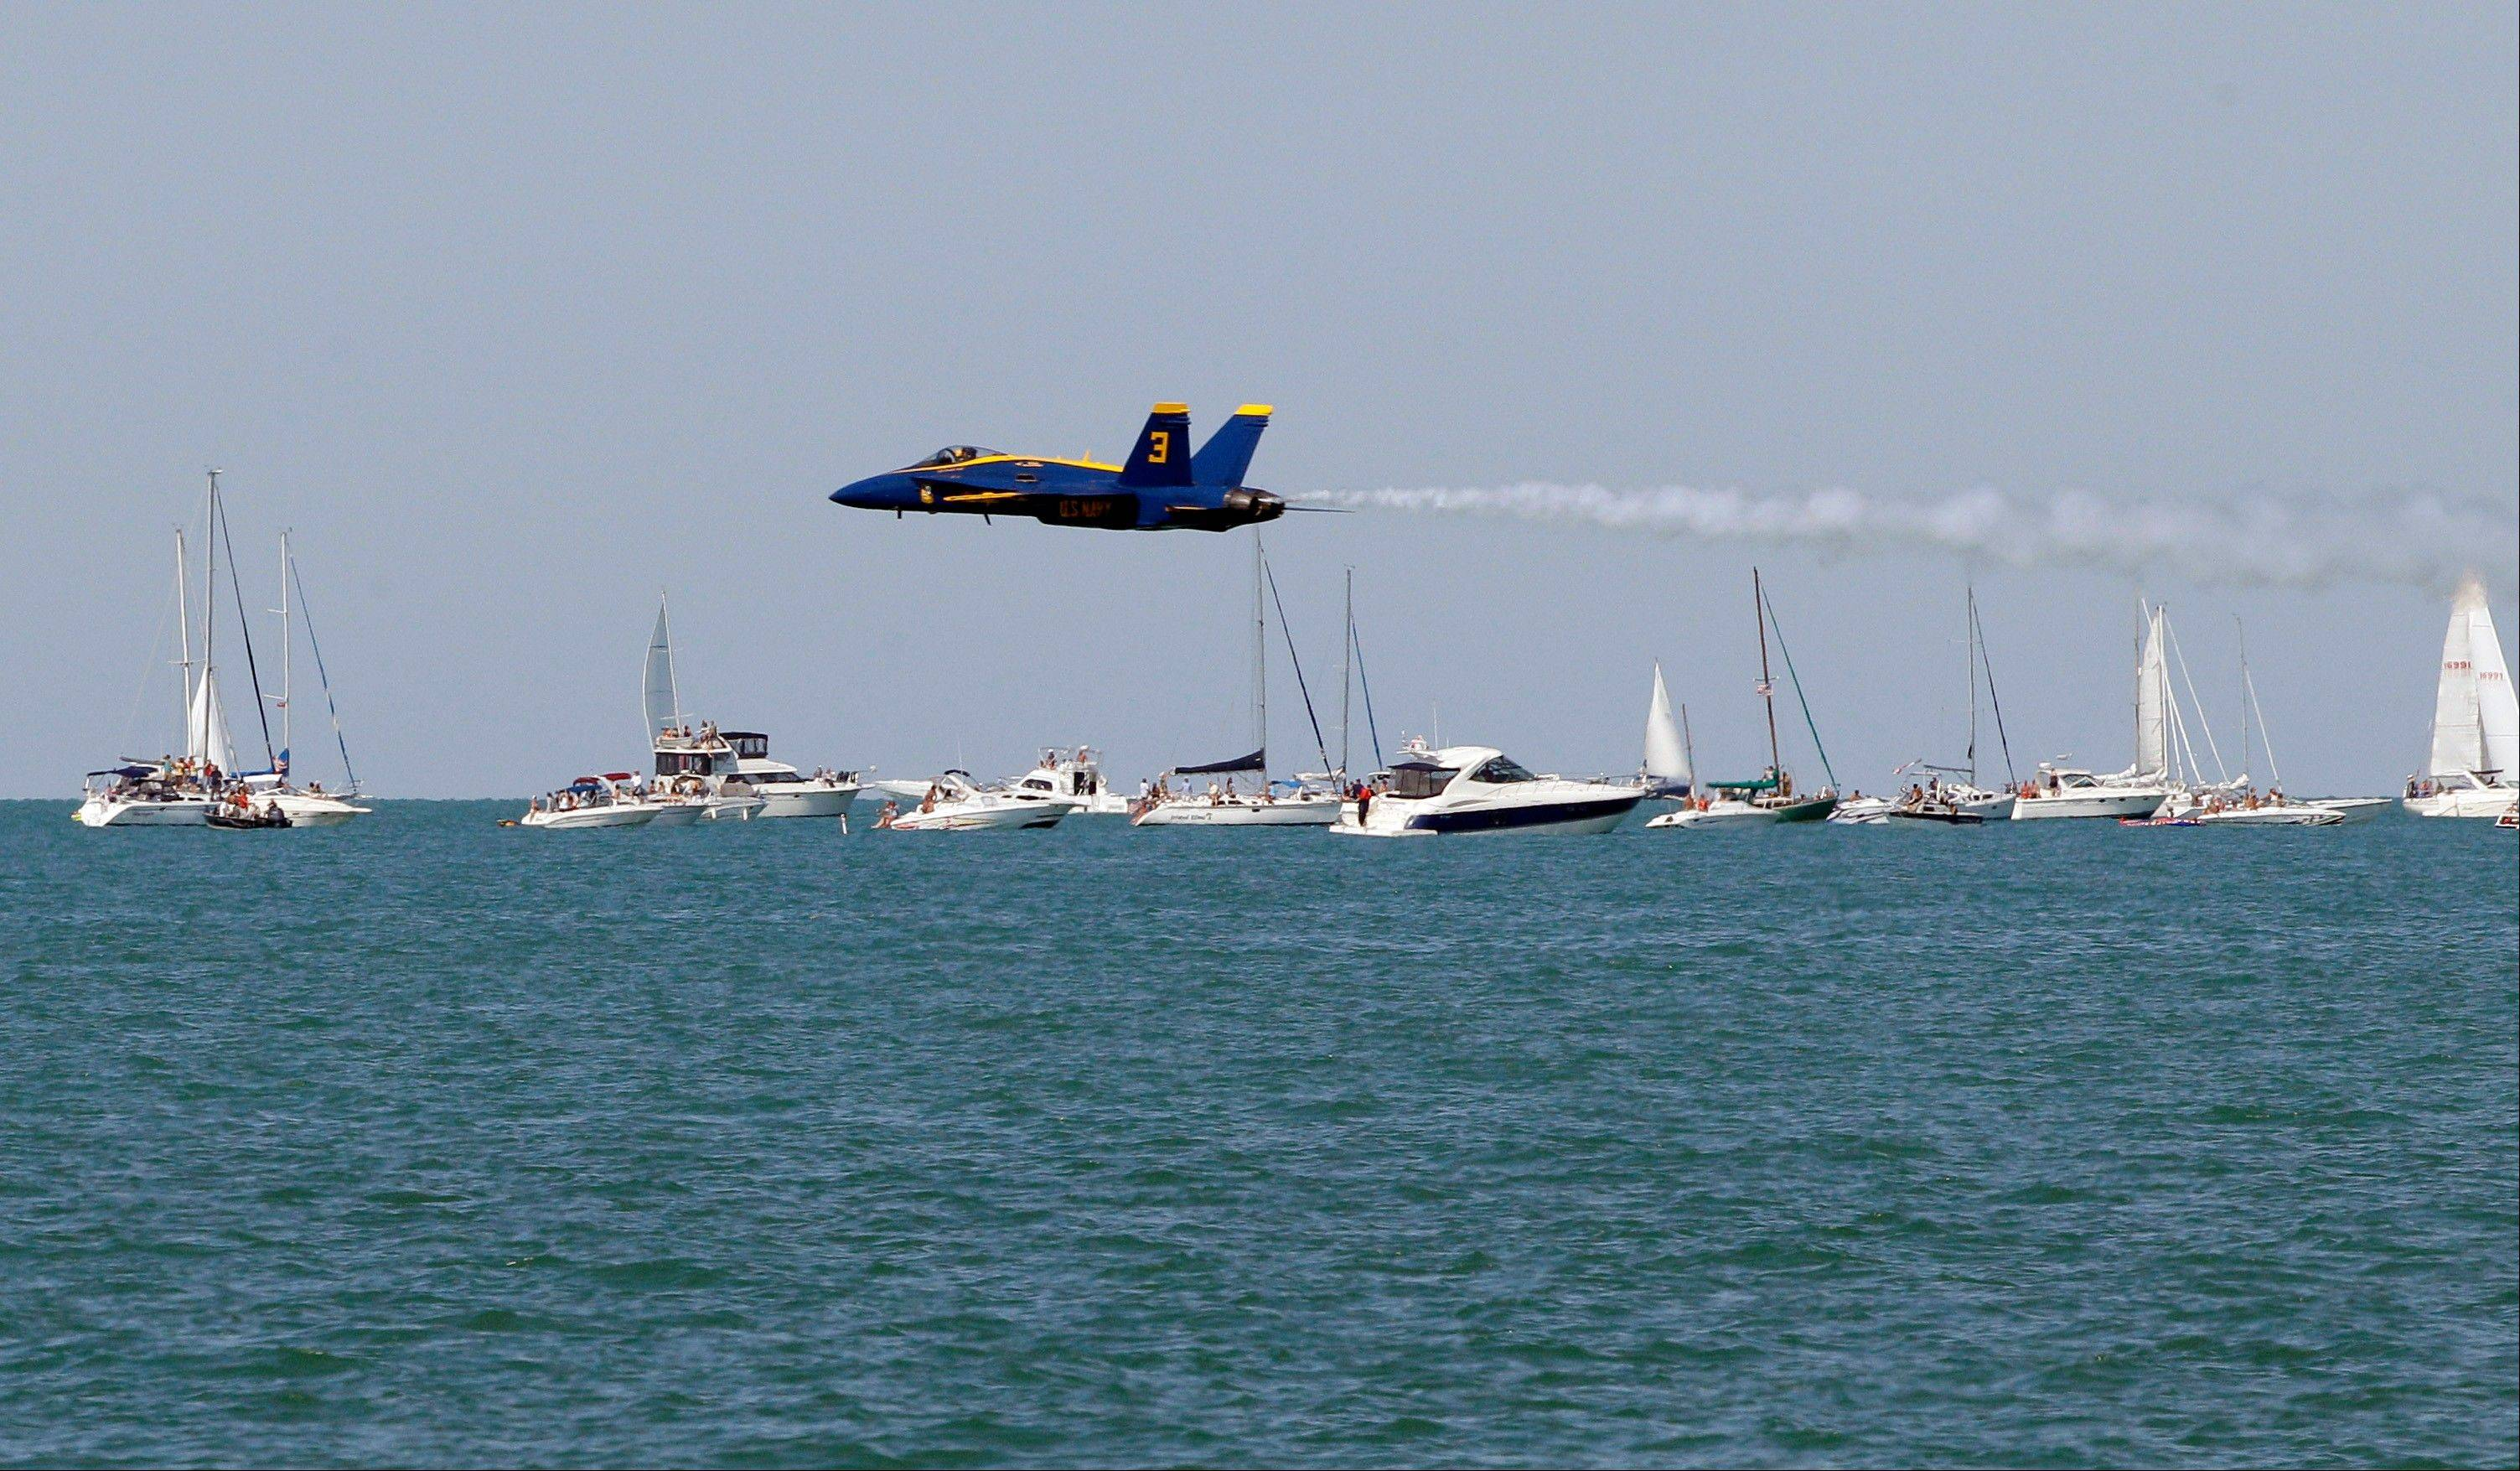 A member of the U.S. Navy Blue Angels makes a low pass over Lake Michigan during the Chicago Air and Water Show on Sunday, Aug. 19, 2012, in Chicago.